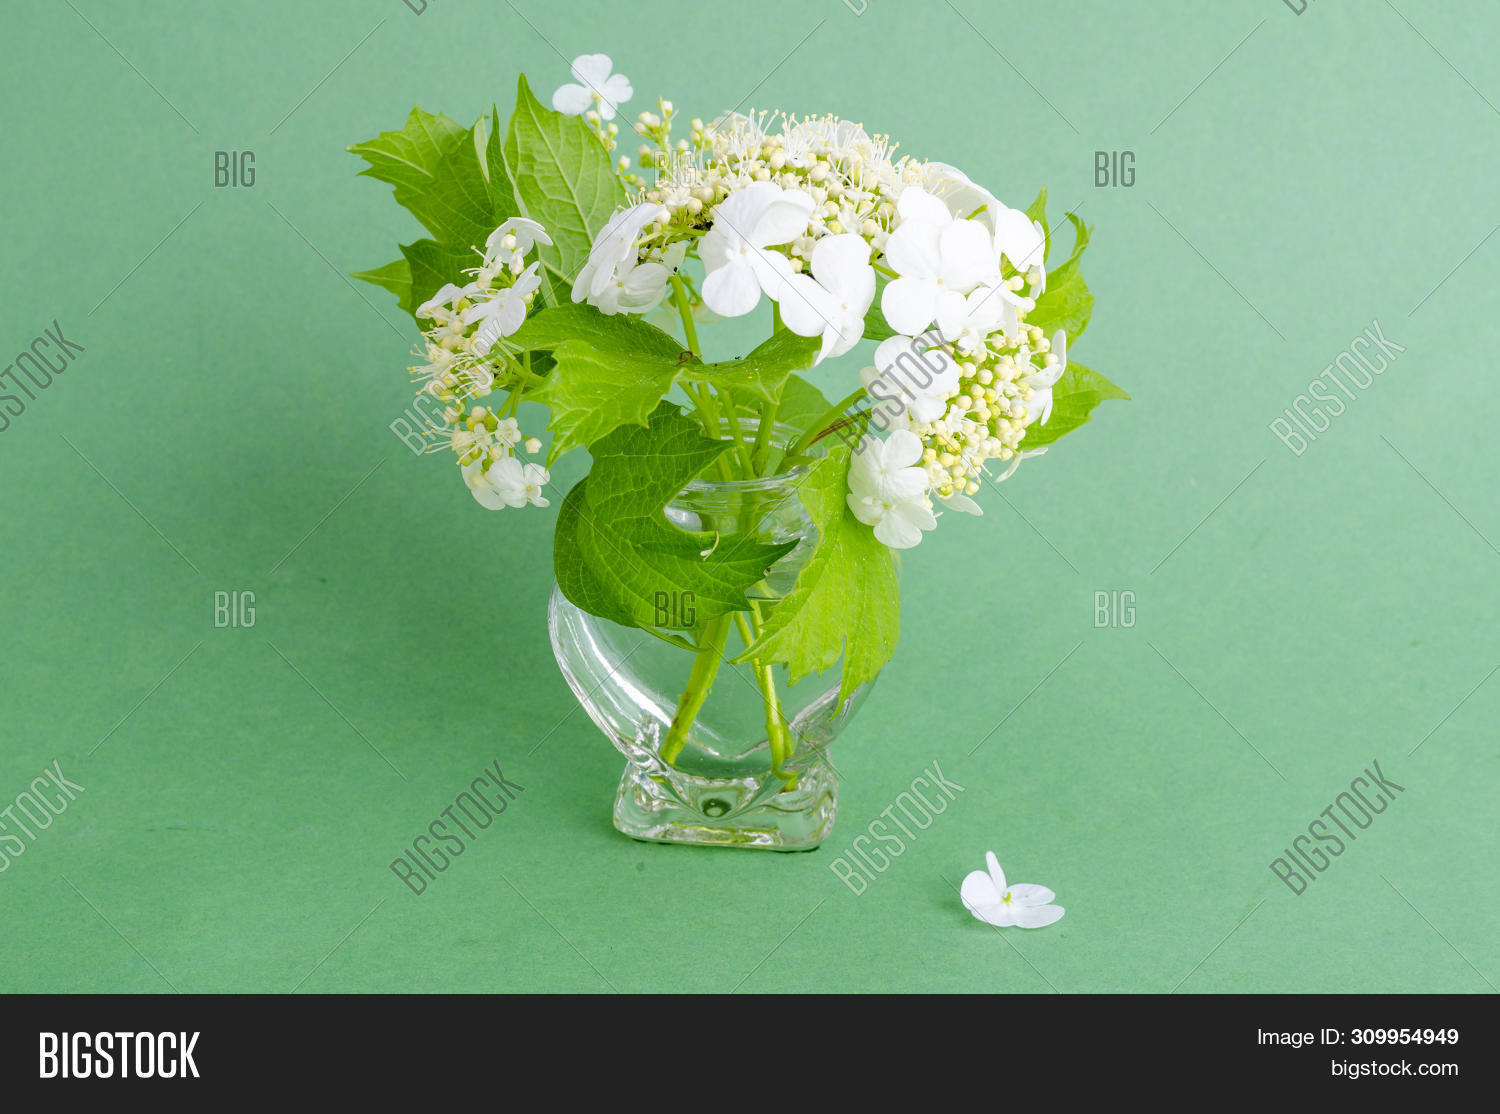 Small Vase Sprigs Image Photo Free Trial Bigstock